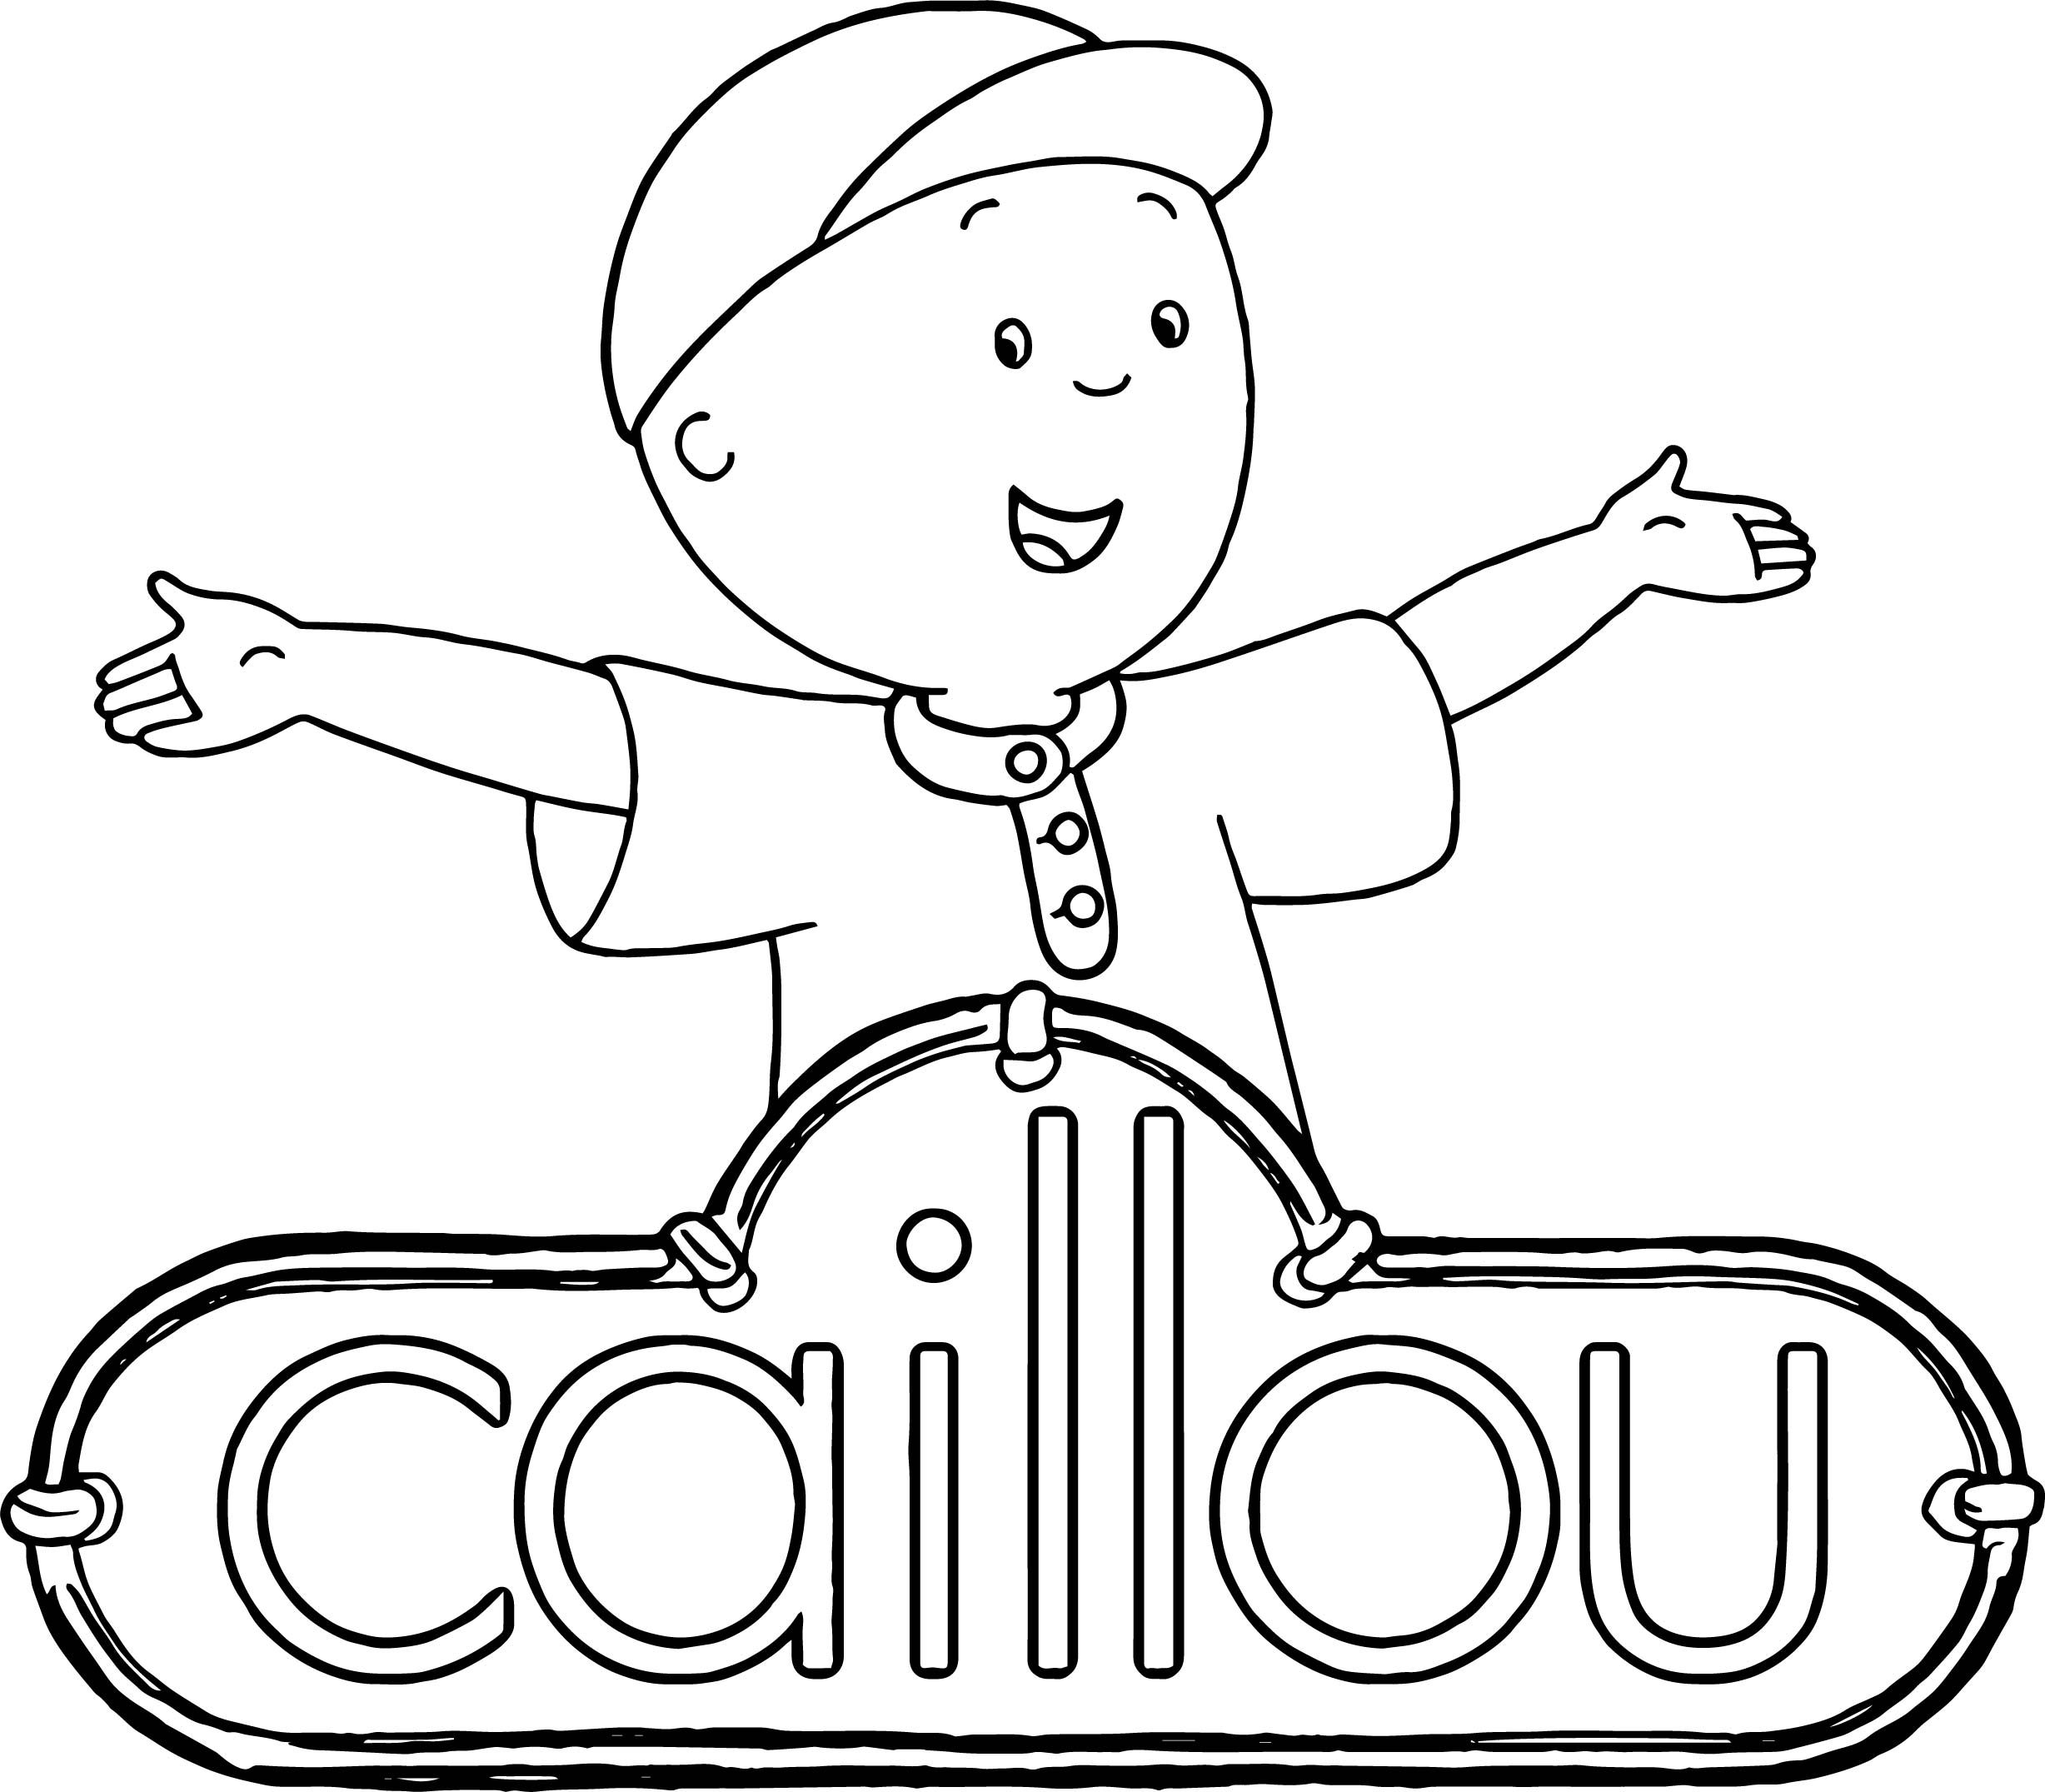 Caillou Logo New Coloring Page